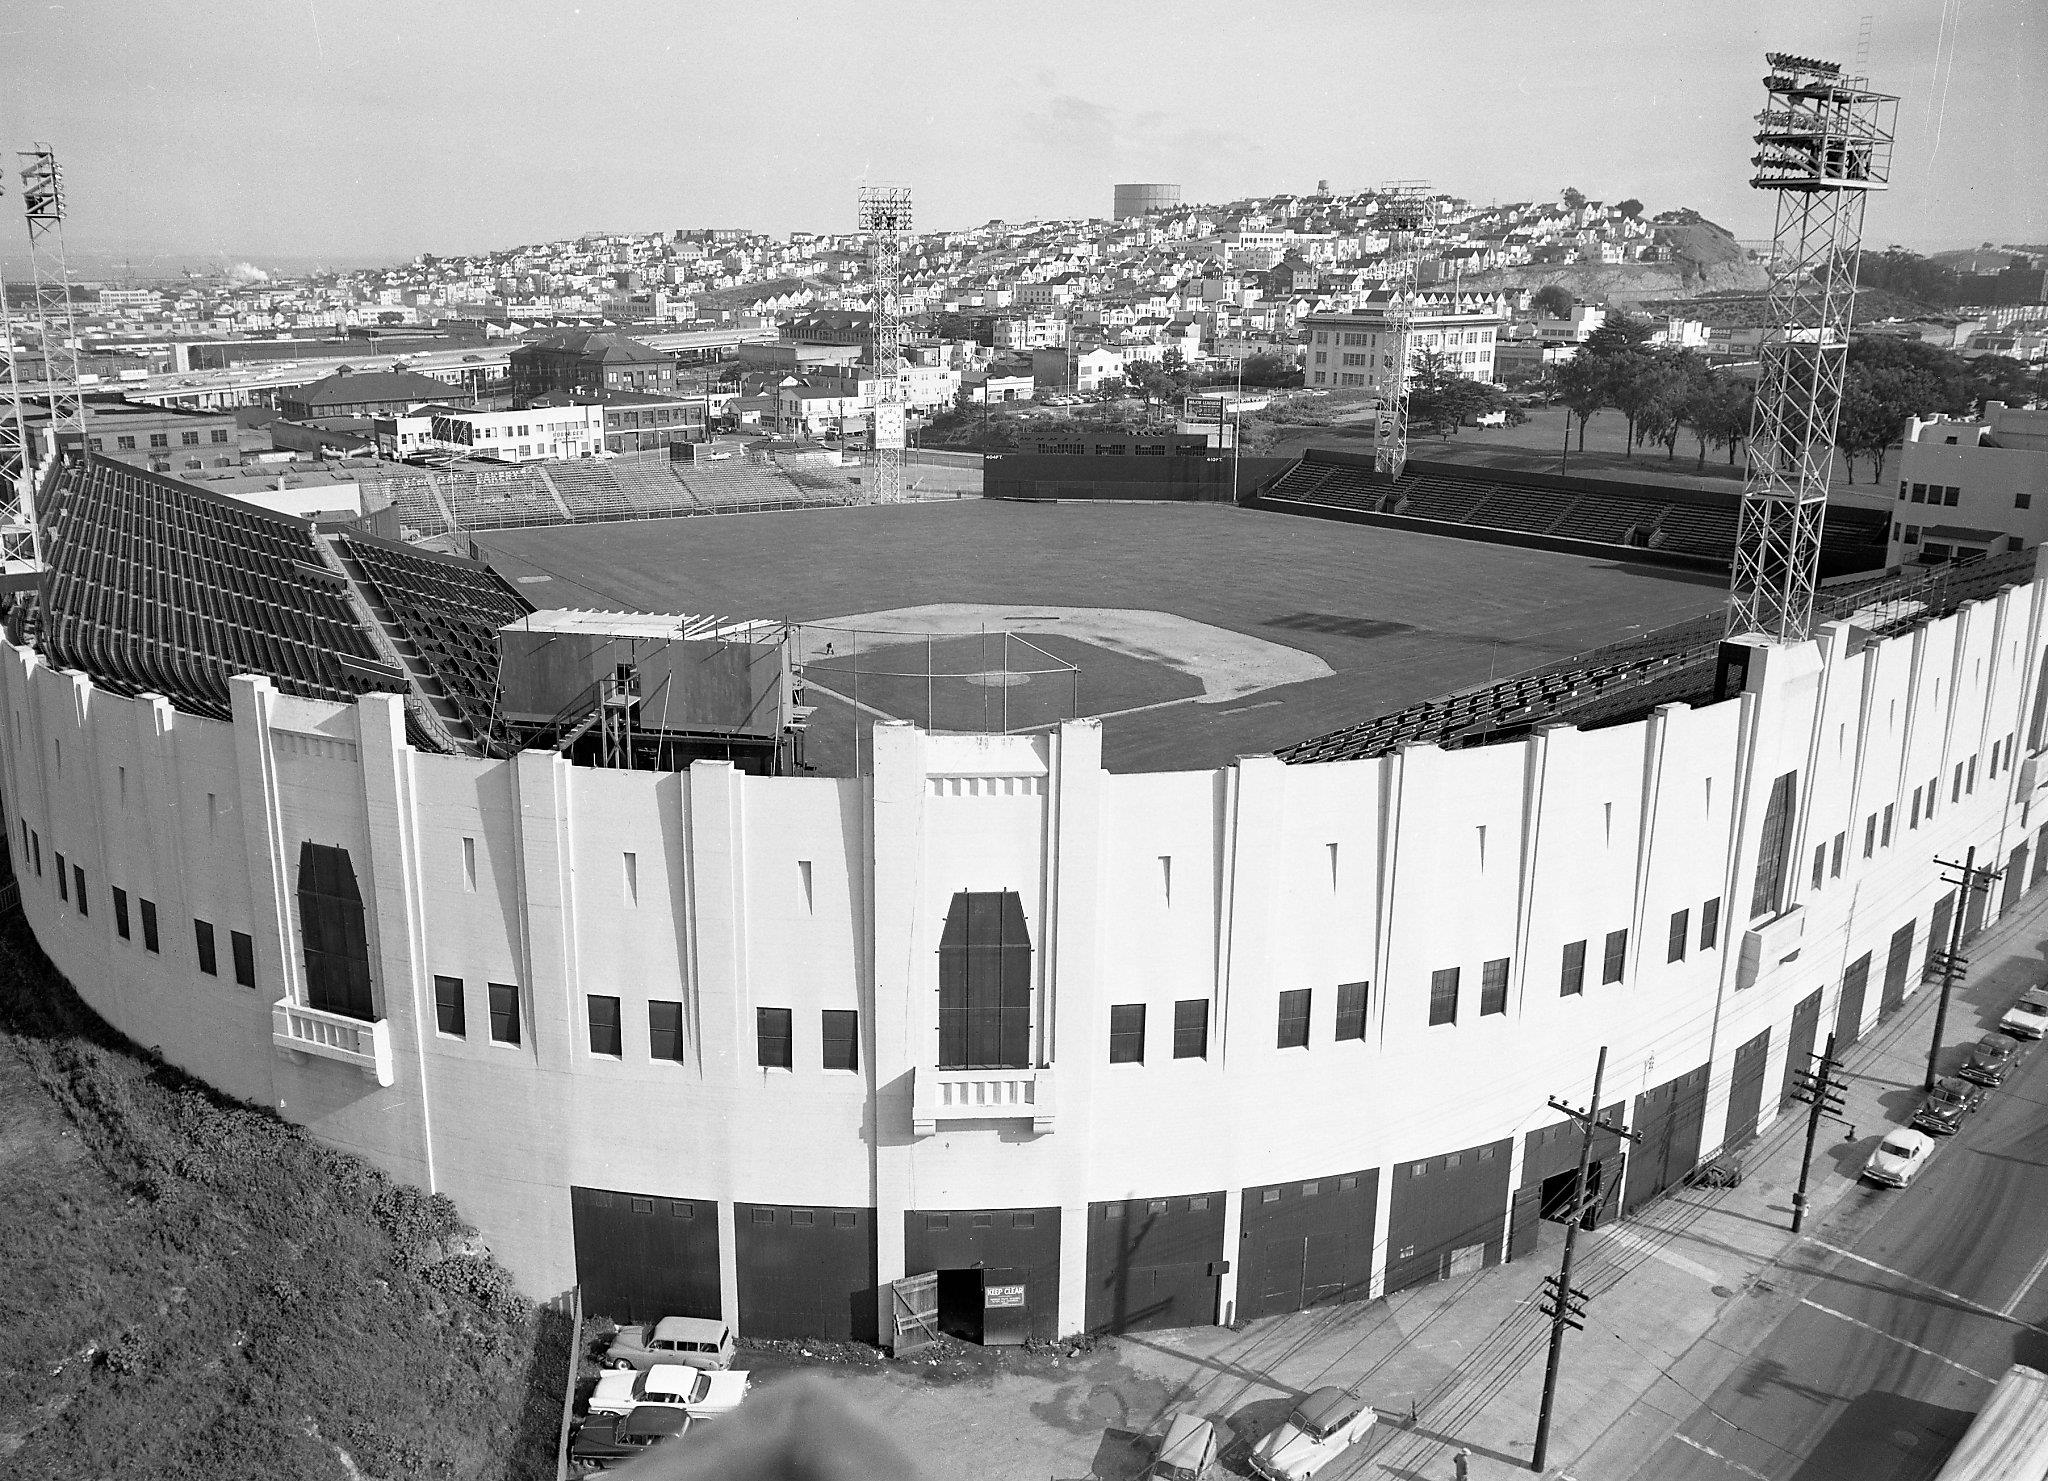 State warriors oracle arena and oakland alameda county coliseum - Seals Stadium In San Francisco In The 1940s The Mission District Stadium Hosted The Seals